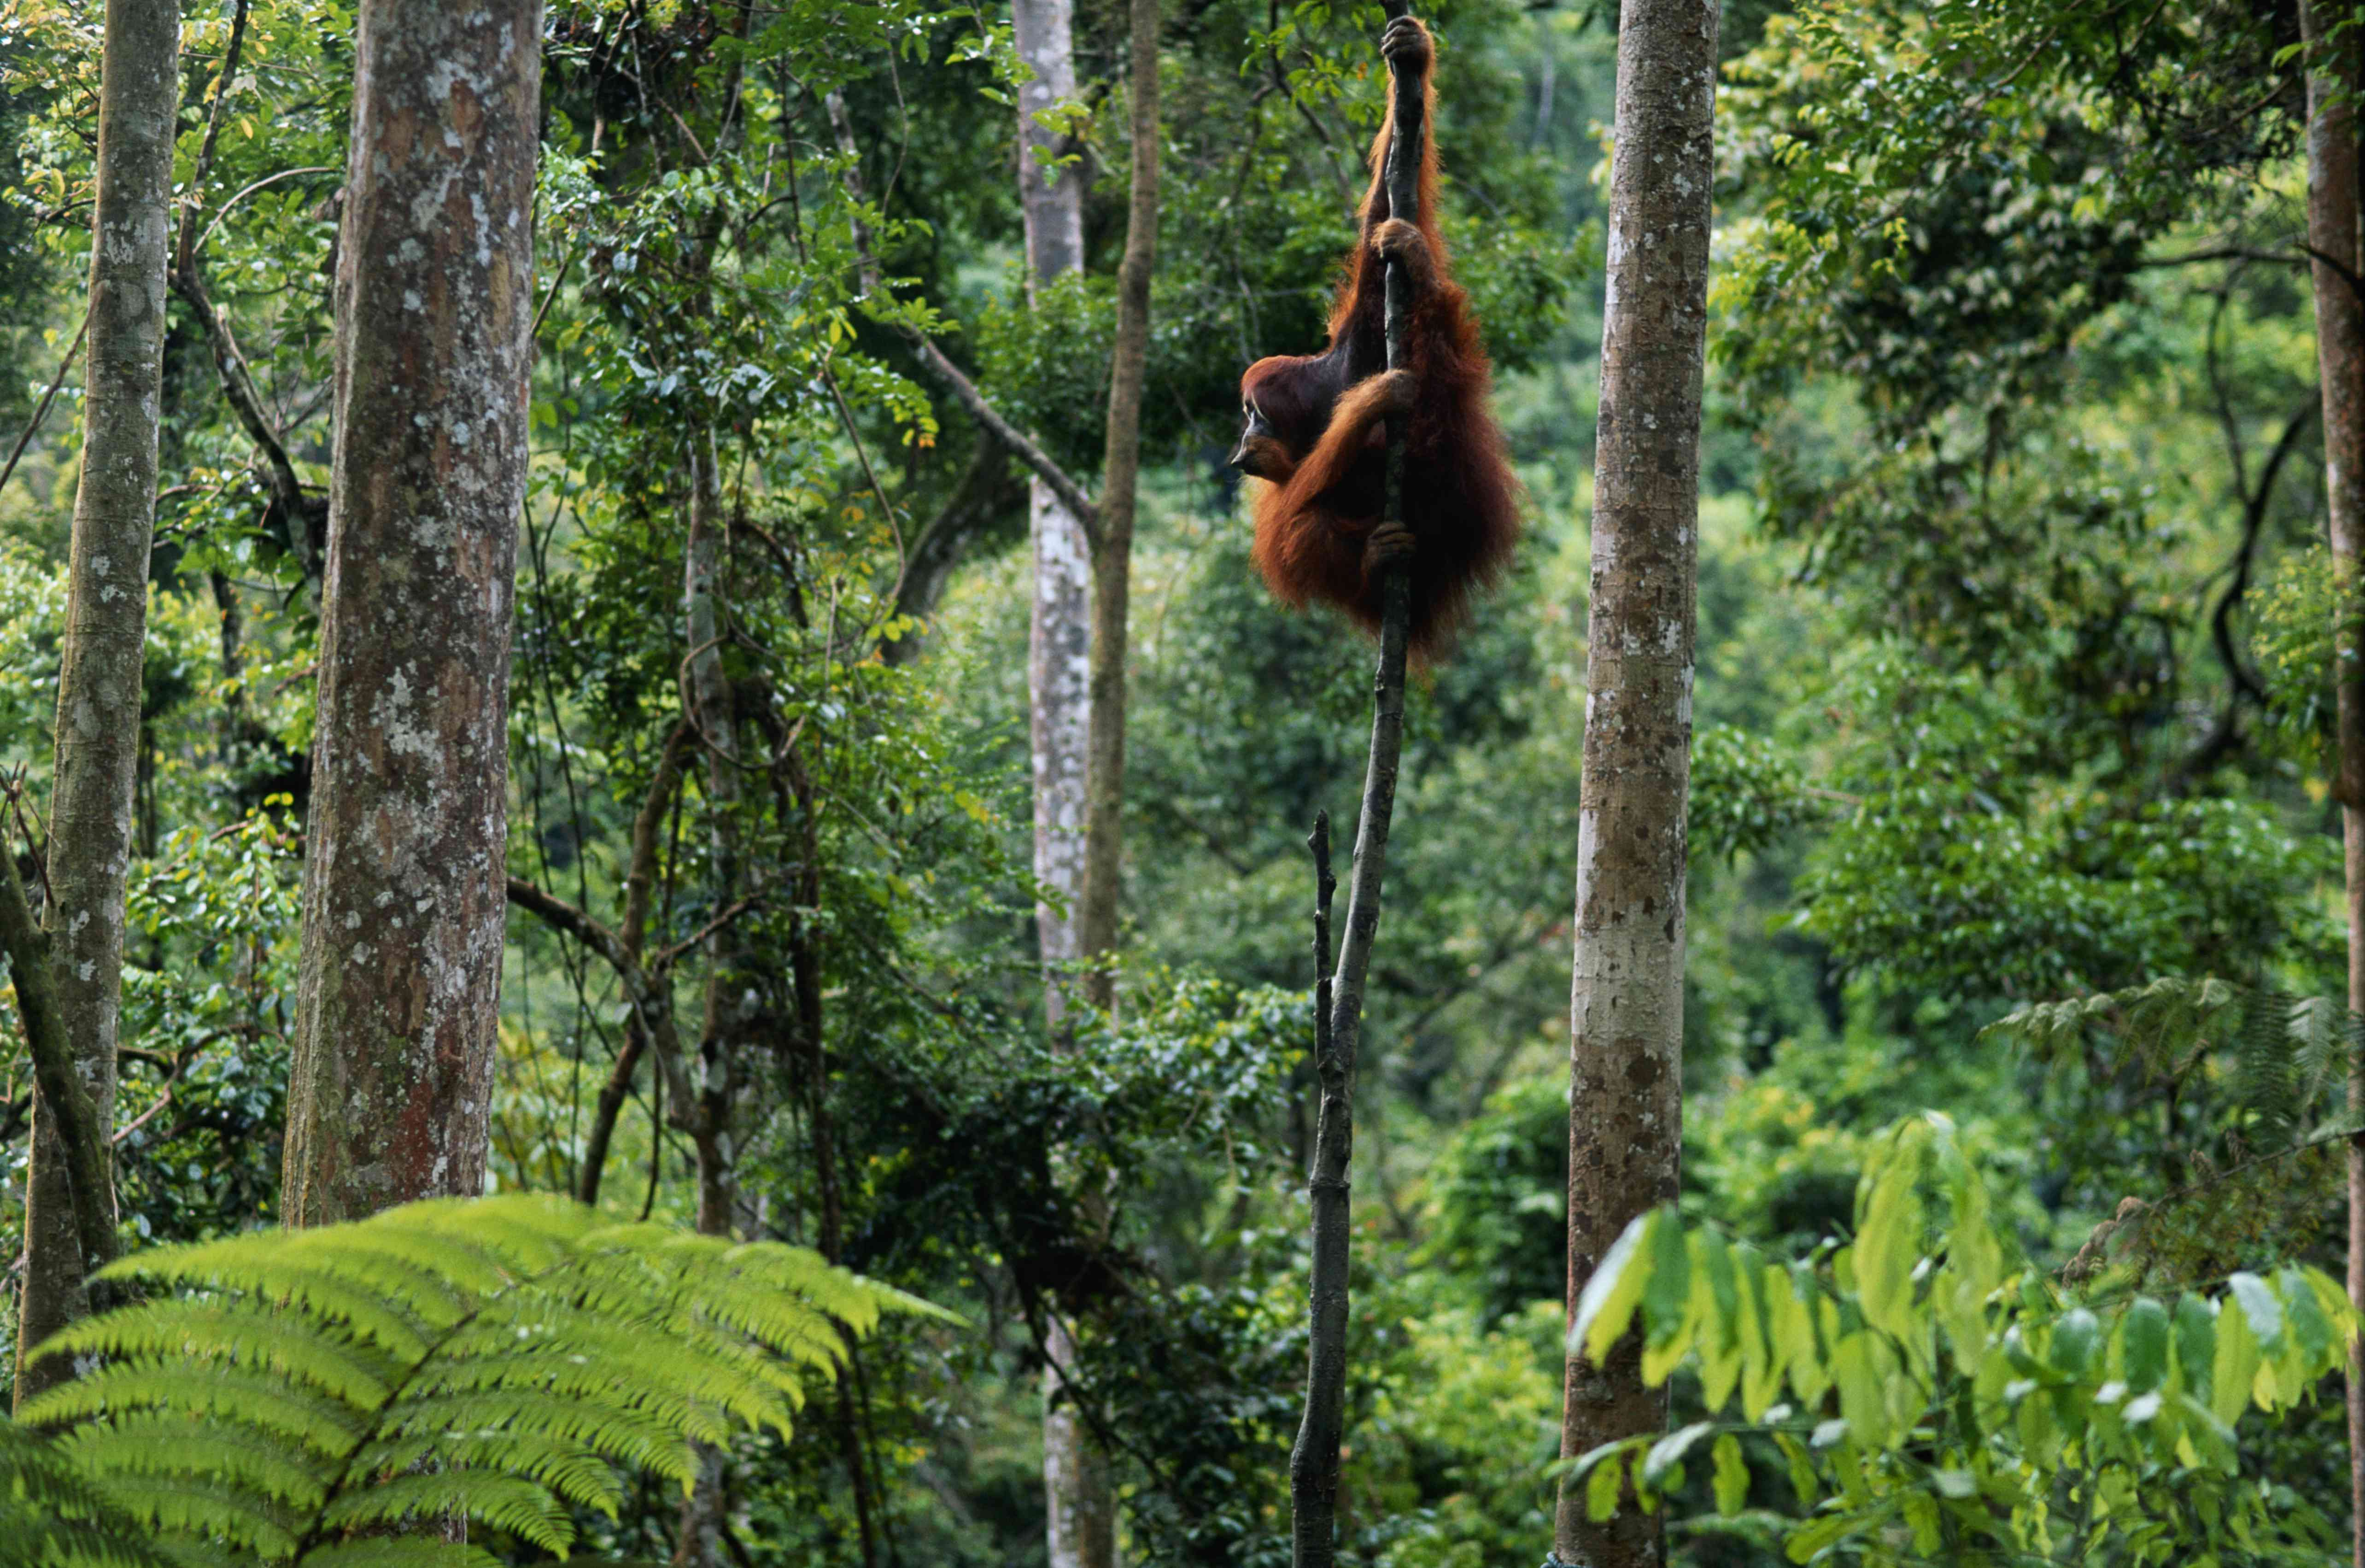 Orangutan hanging from a branch in an Indonesian forest